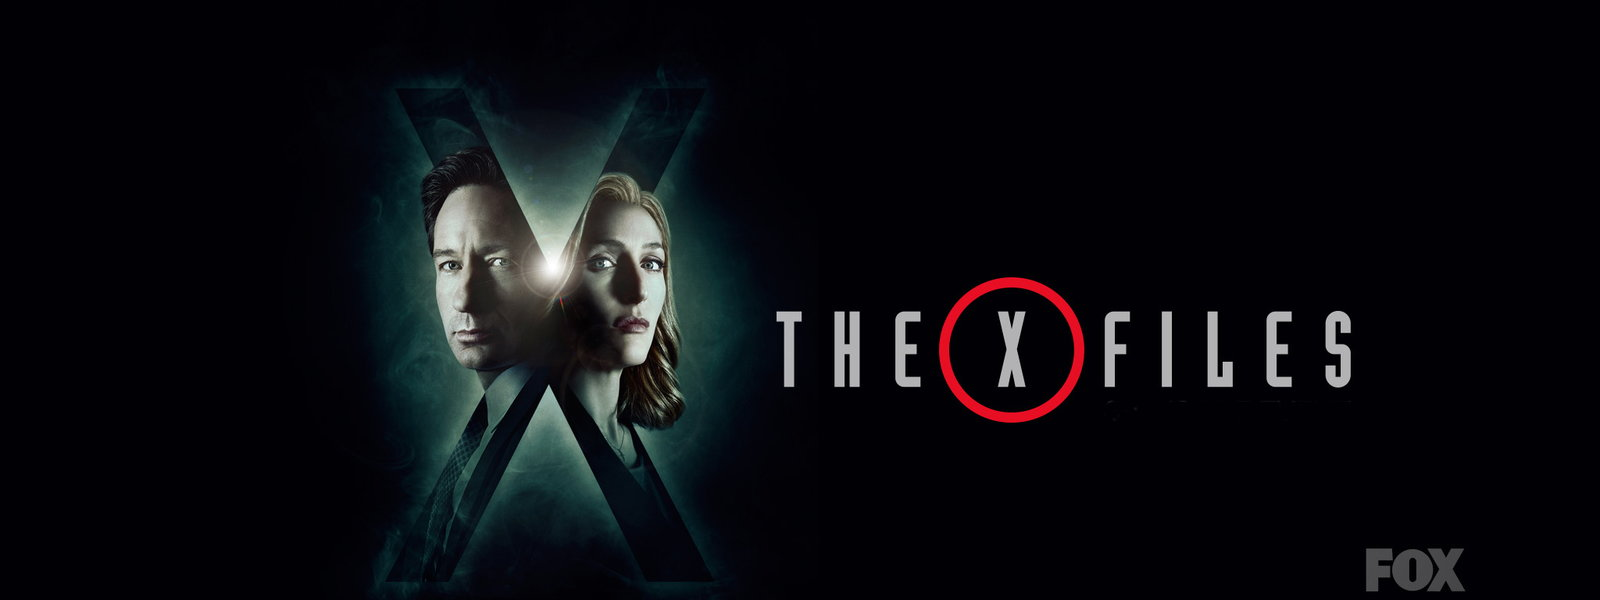 the xfiles season 10 review blerds online